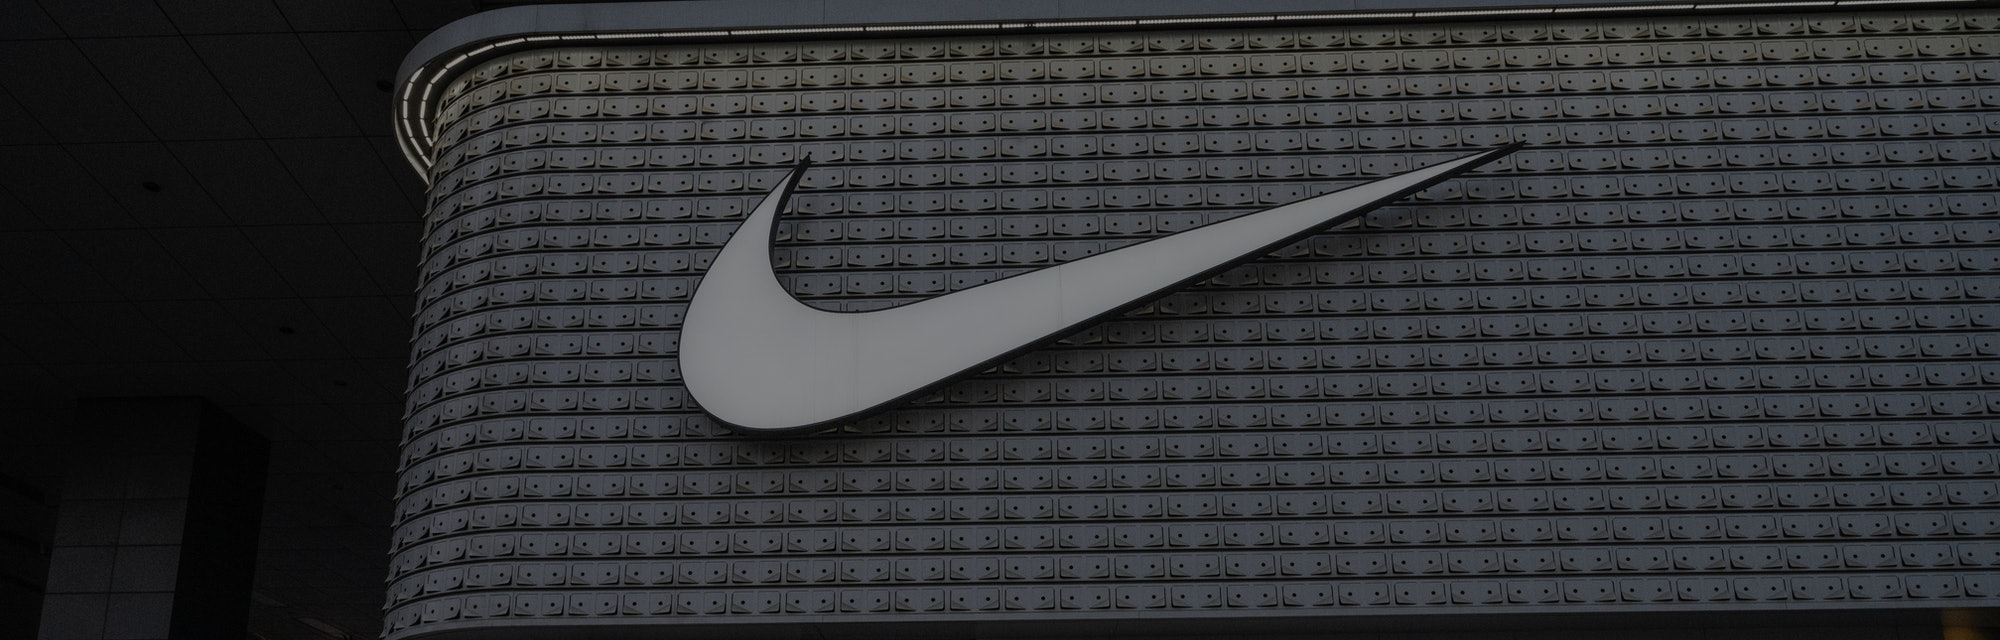 BEIJING, CHINA - APRIL 08: A woman walks outside a Nike store at a shopping area on April 8, 2021 in Beijing, China. (Photo by Kevin Frayer/Getty Images)